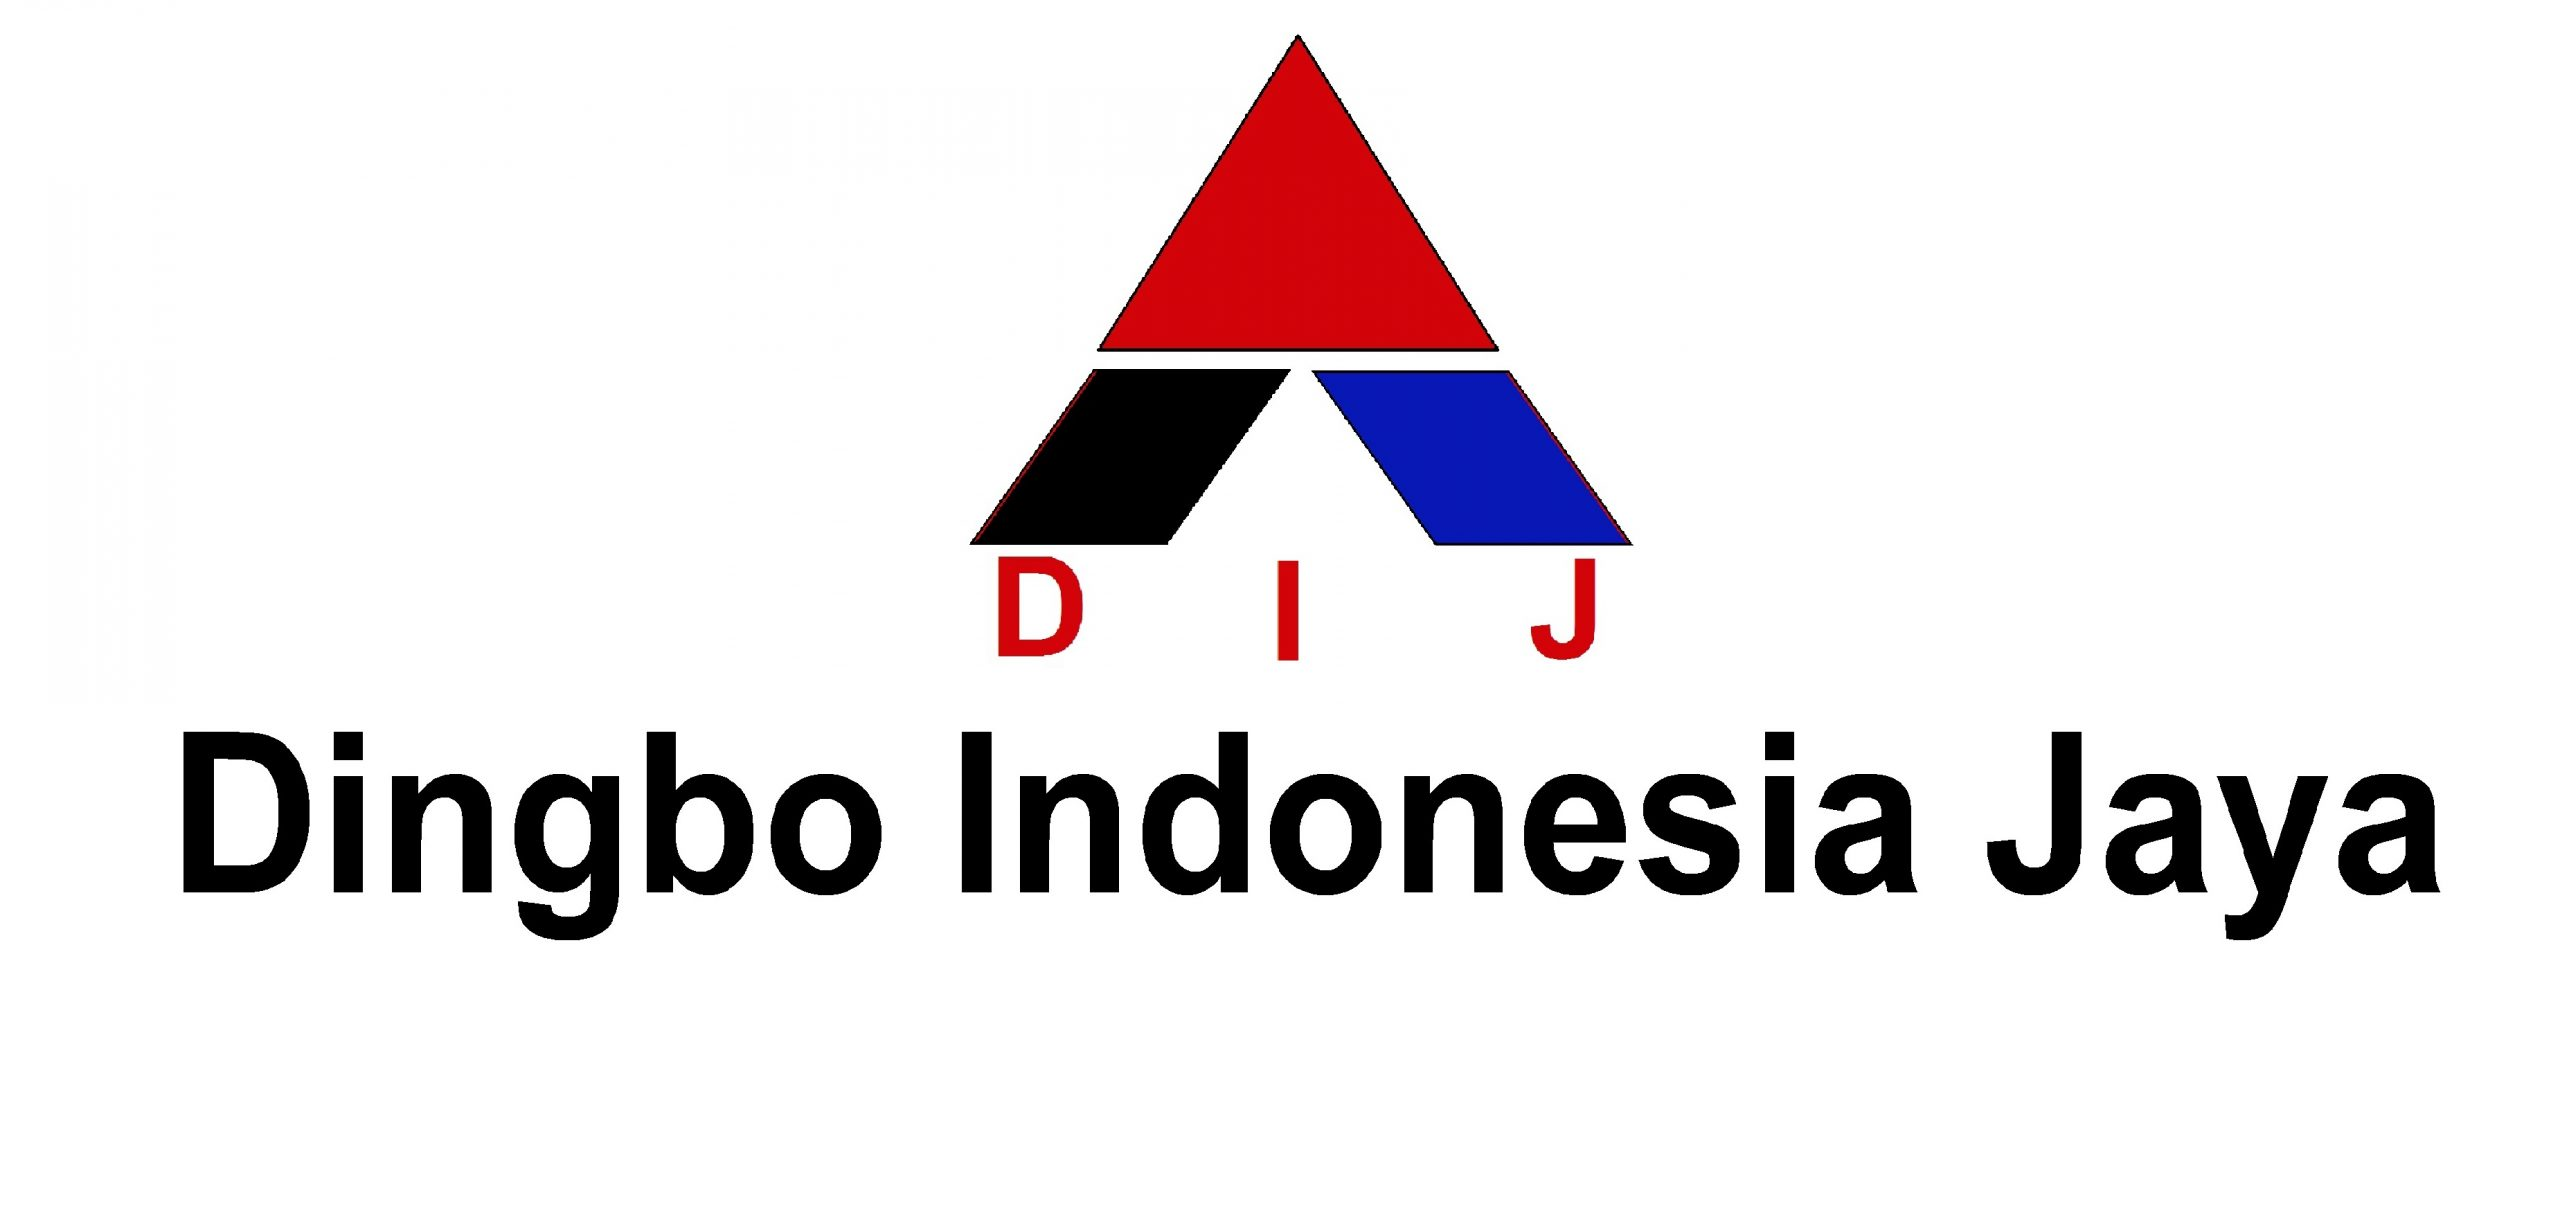 PT Dingbo Indonesia Jaya